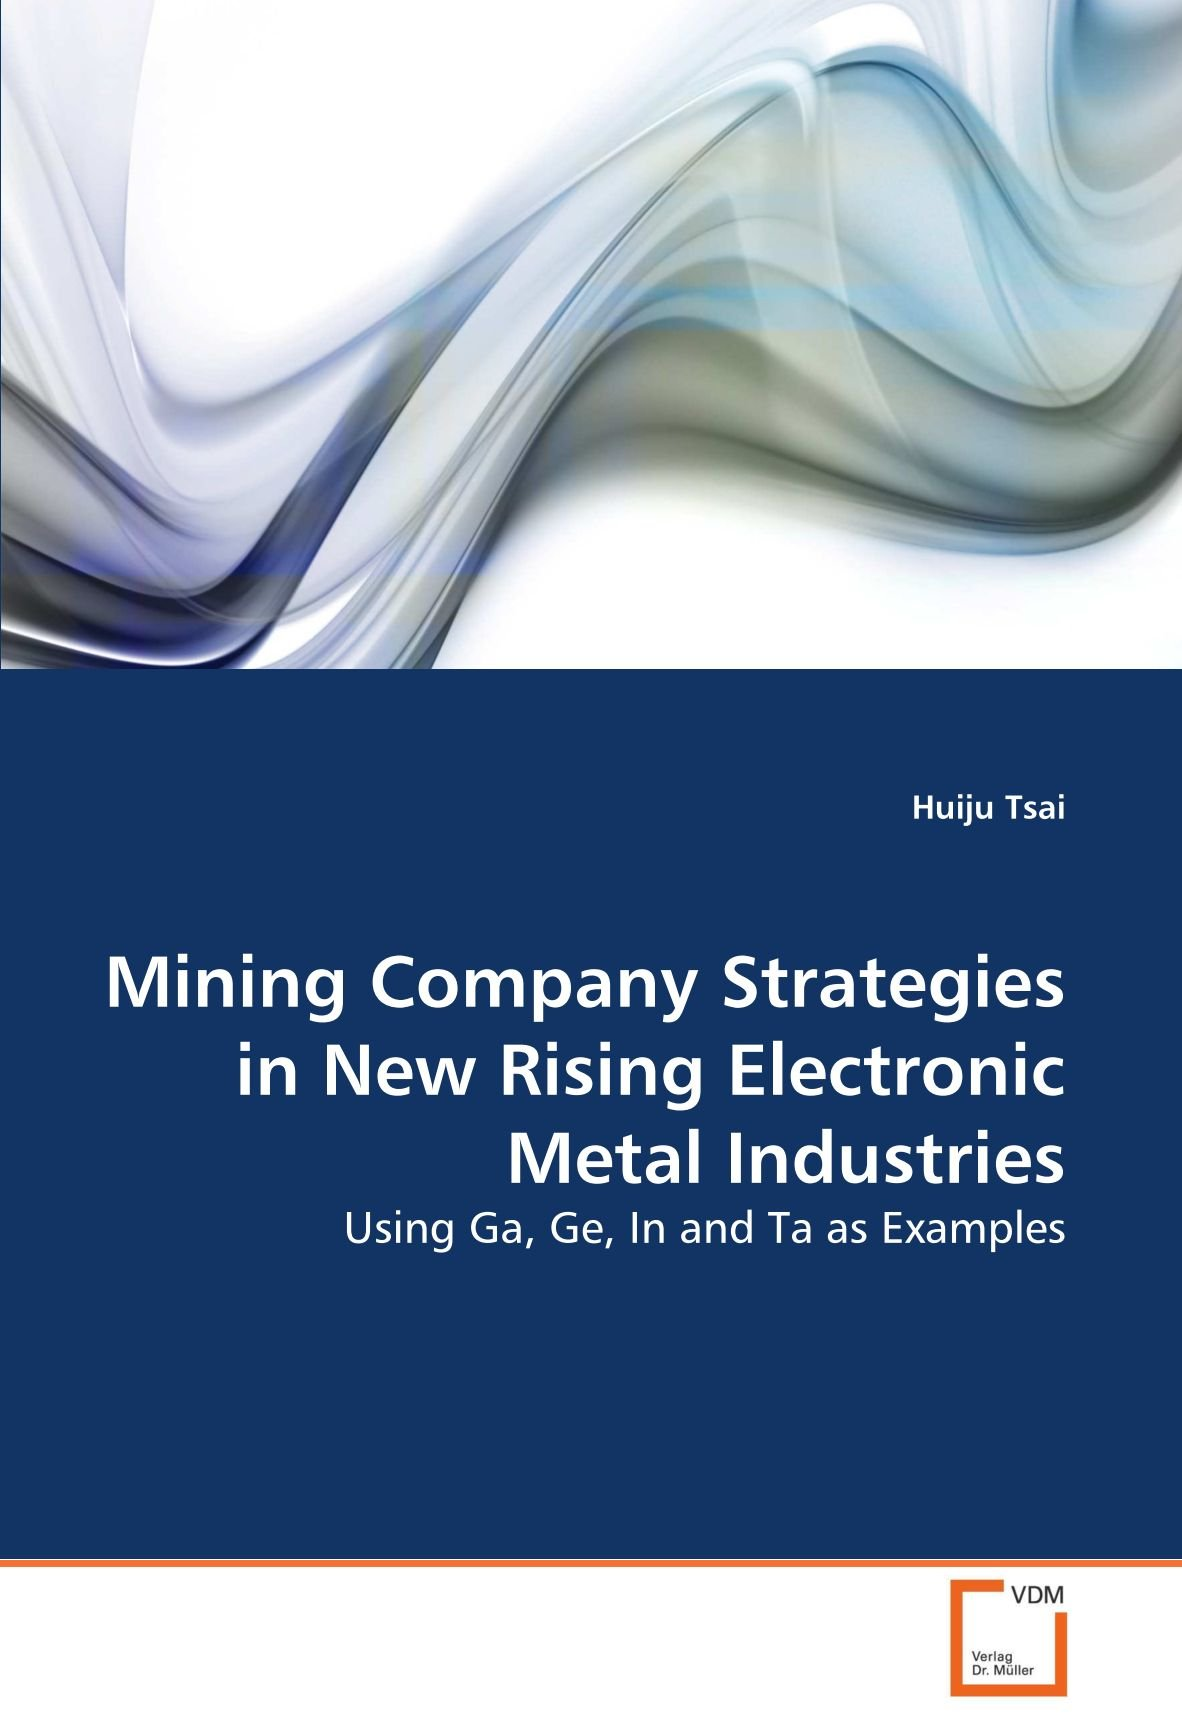 Mining Company Strategies in New Rising Electronic Metal Industries: Using Ga, Ge, In and Ta as Examples